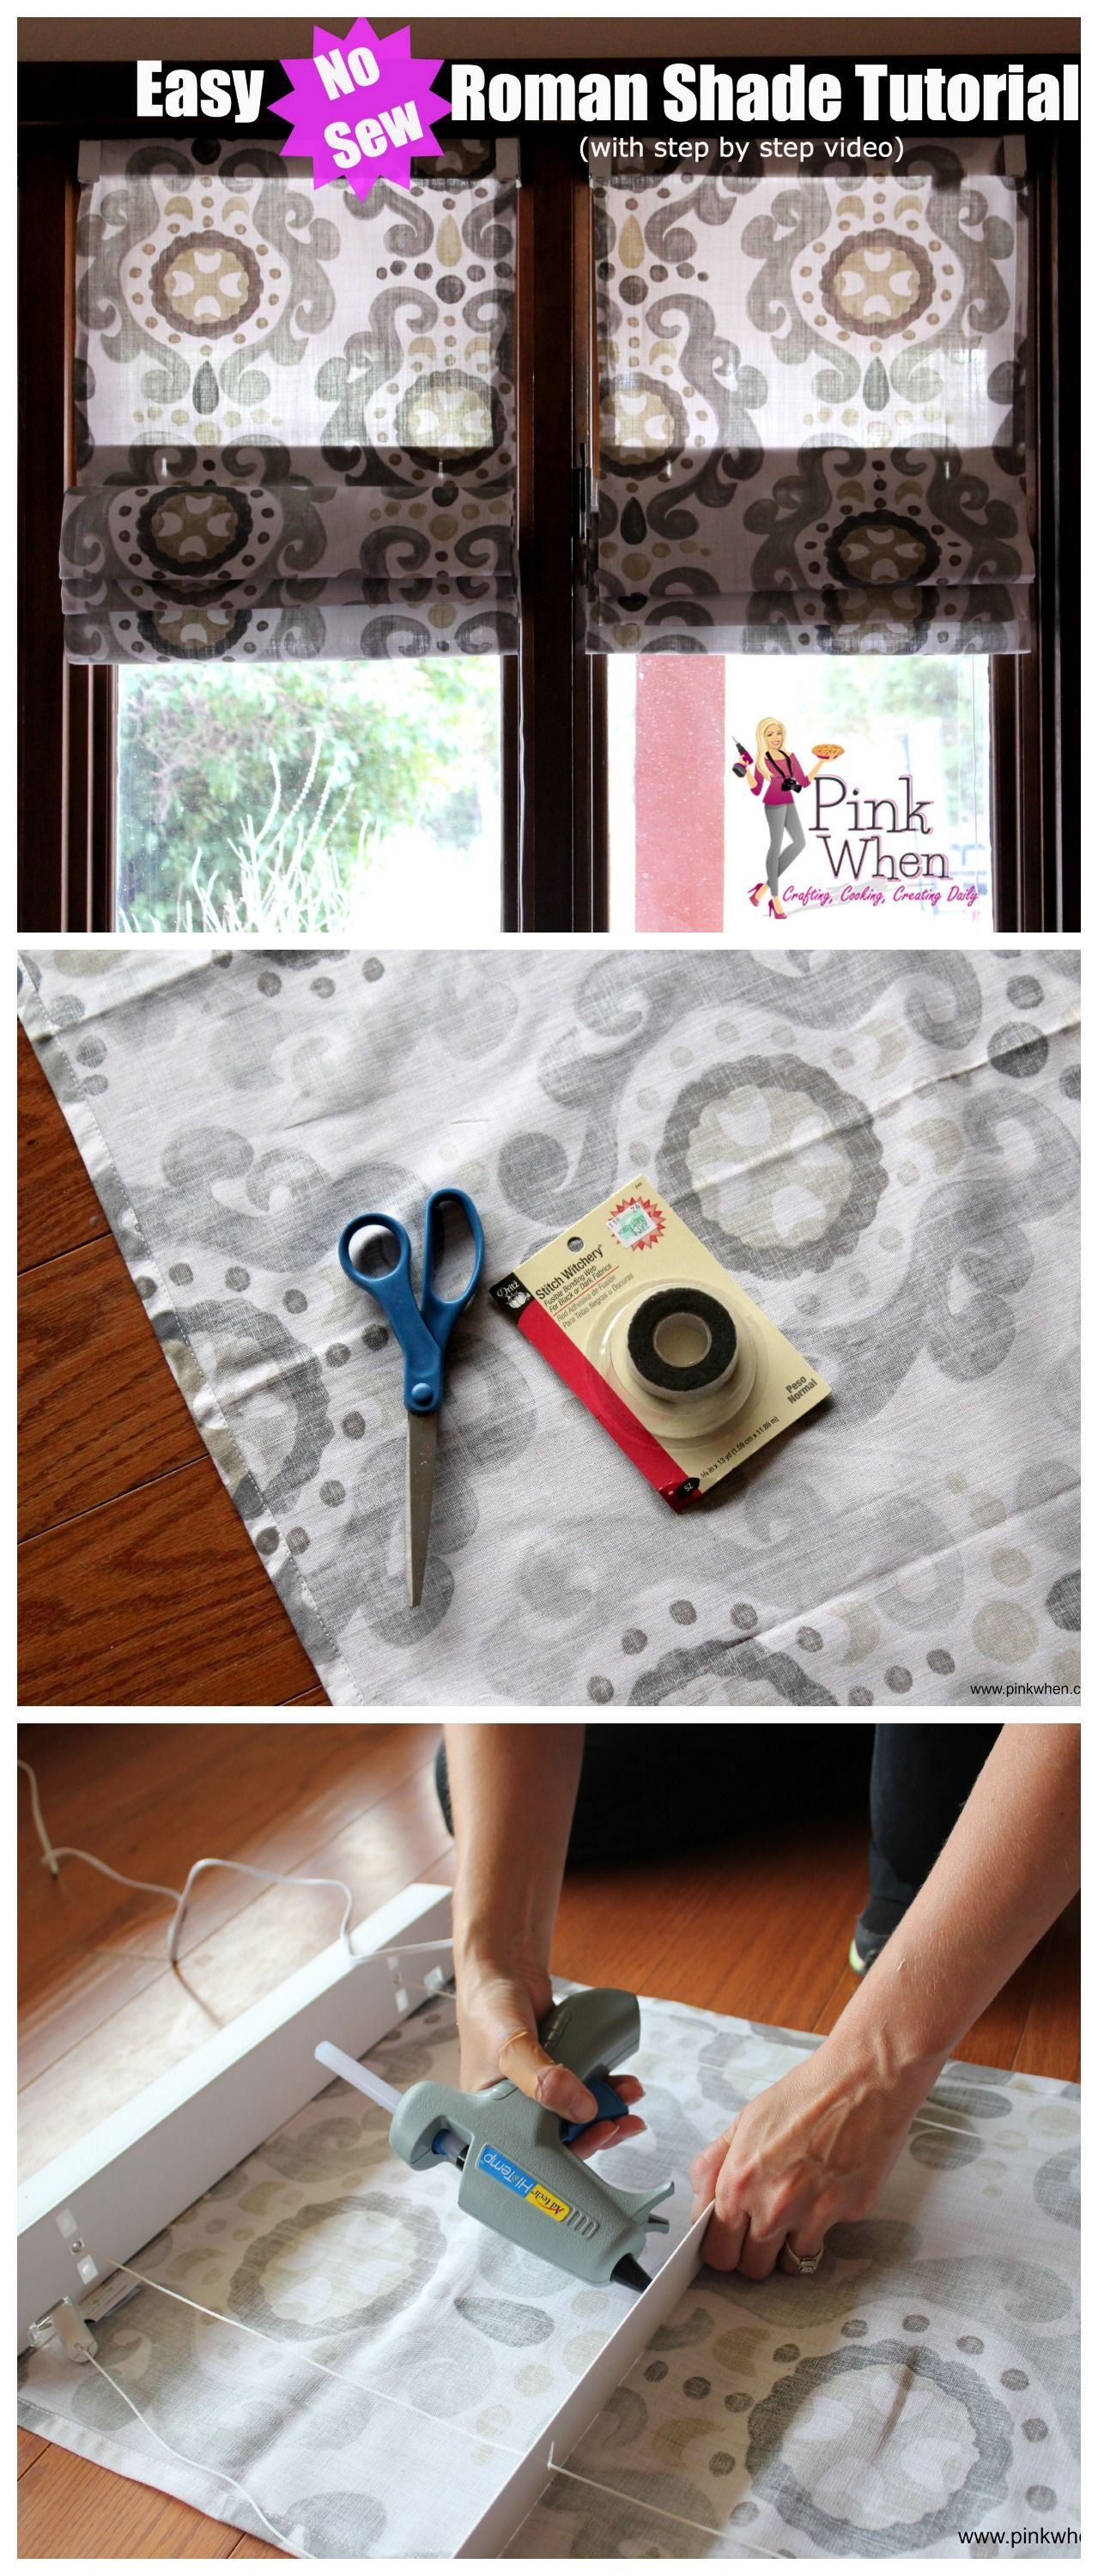 Make Beautiful Diy No Sew Roman Shades With This Easy To Follow